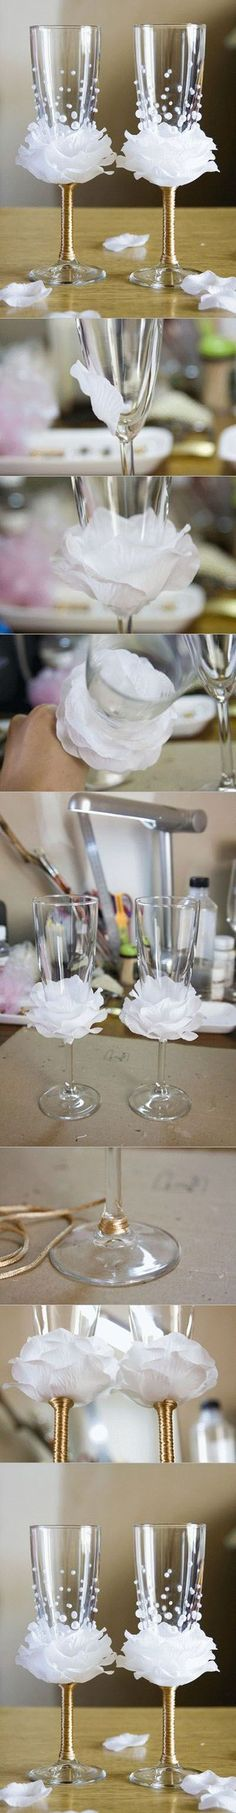 Wonderful DIY Wine Glasses Decoration With Flowers and Beads DIY Flower Bead Decorated Wine Glasses. These would be perfect for a wedding toast, bridal showers, [. Diy Wine Glasses, Decorated Wine Glasses, Champagne Glasses, Diy Wedding Glasses, Beaded Flowers, Diy Flowers, Flowers Wine, Flowers Decoration, Wedding Flowers